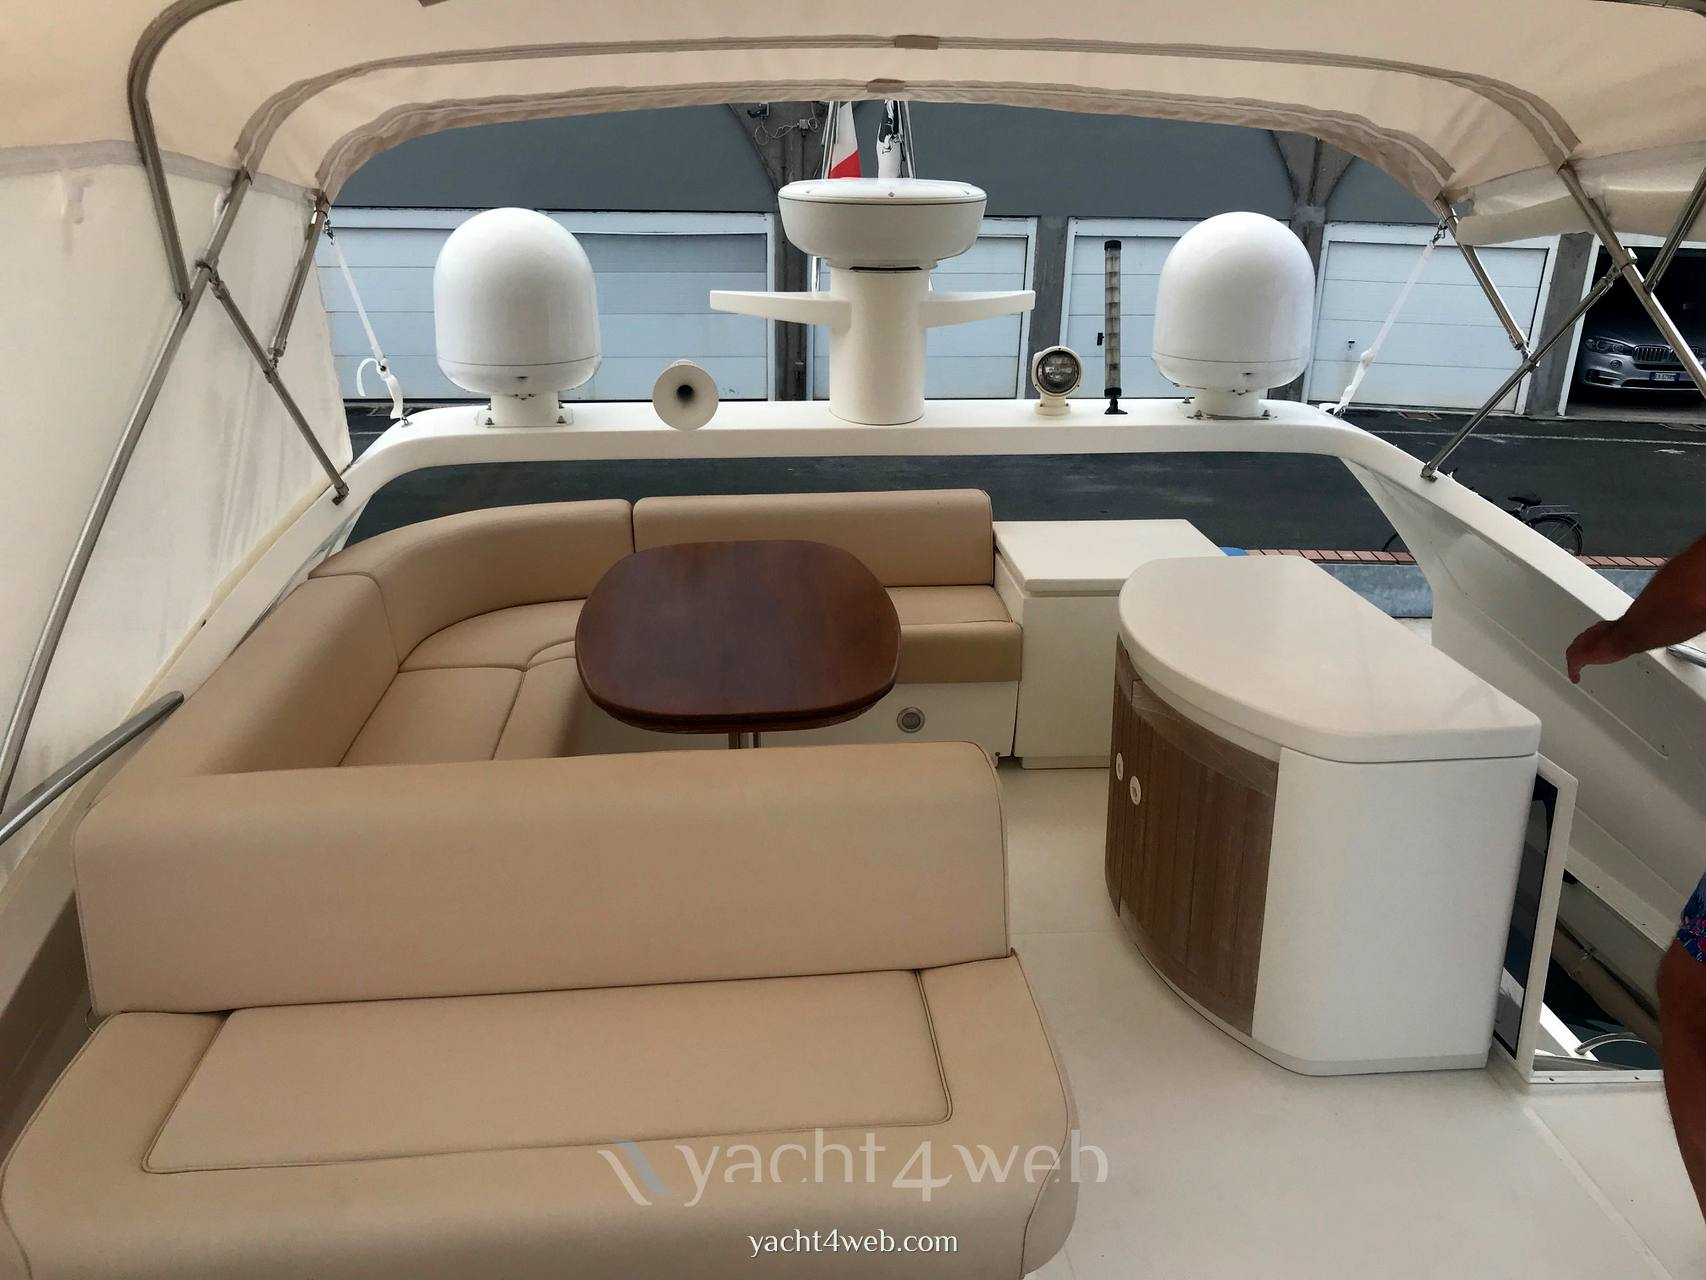 Abacus Marine Abacus 62' Motor boat used for sale